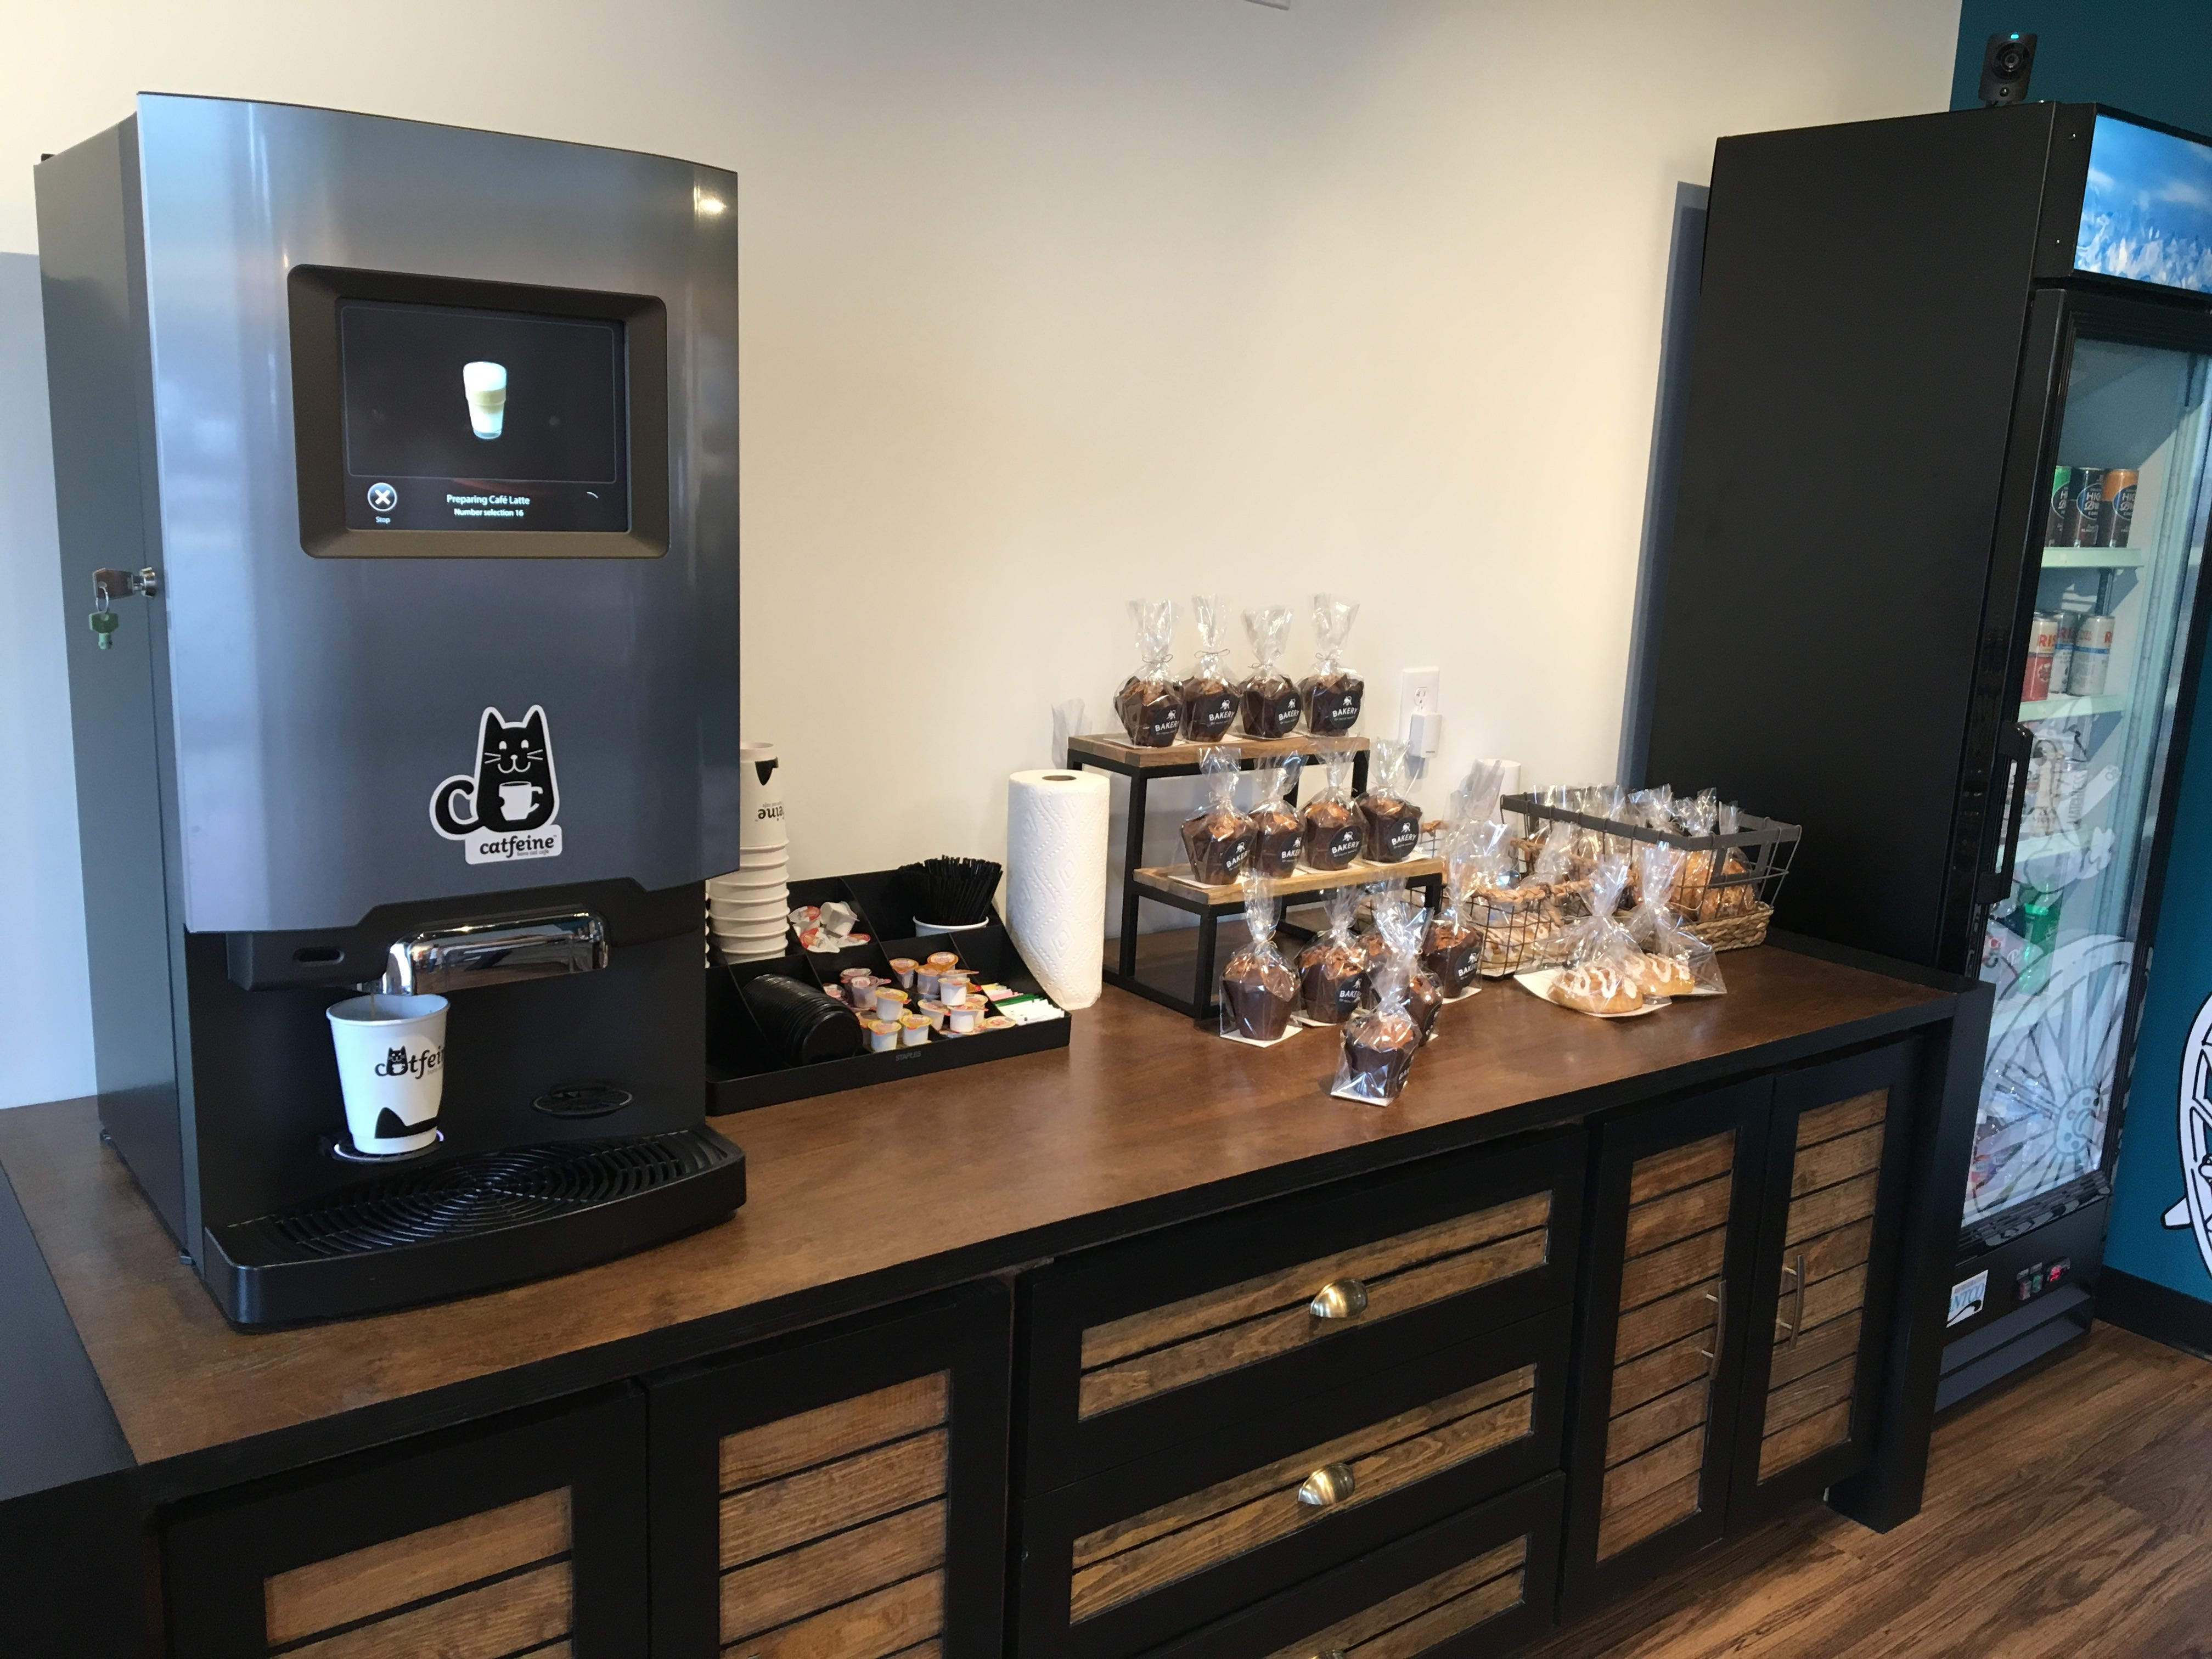 Specialty coffees are self-serve and there are pastries, snacks and cold beverages available at Catfeine Cat Cafe in Murfreesboro.